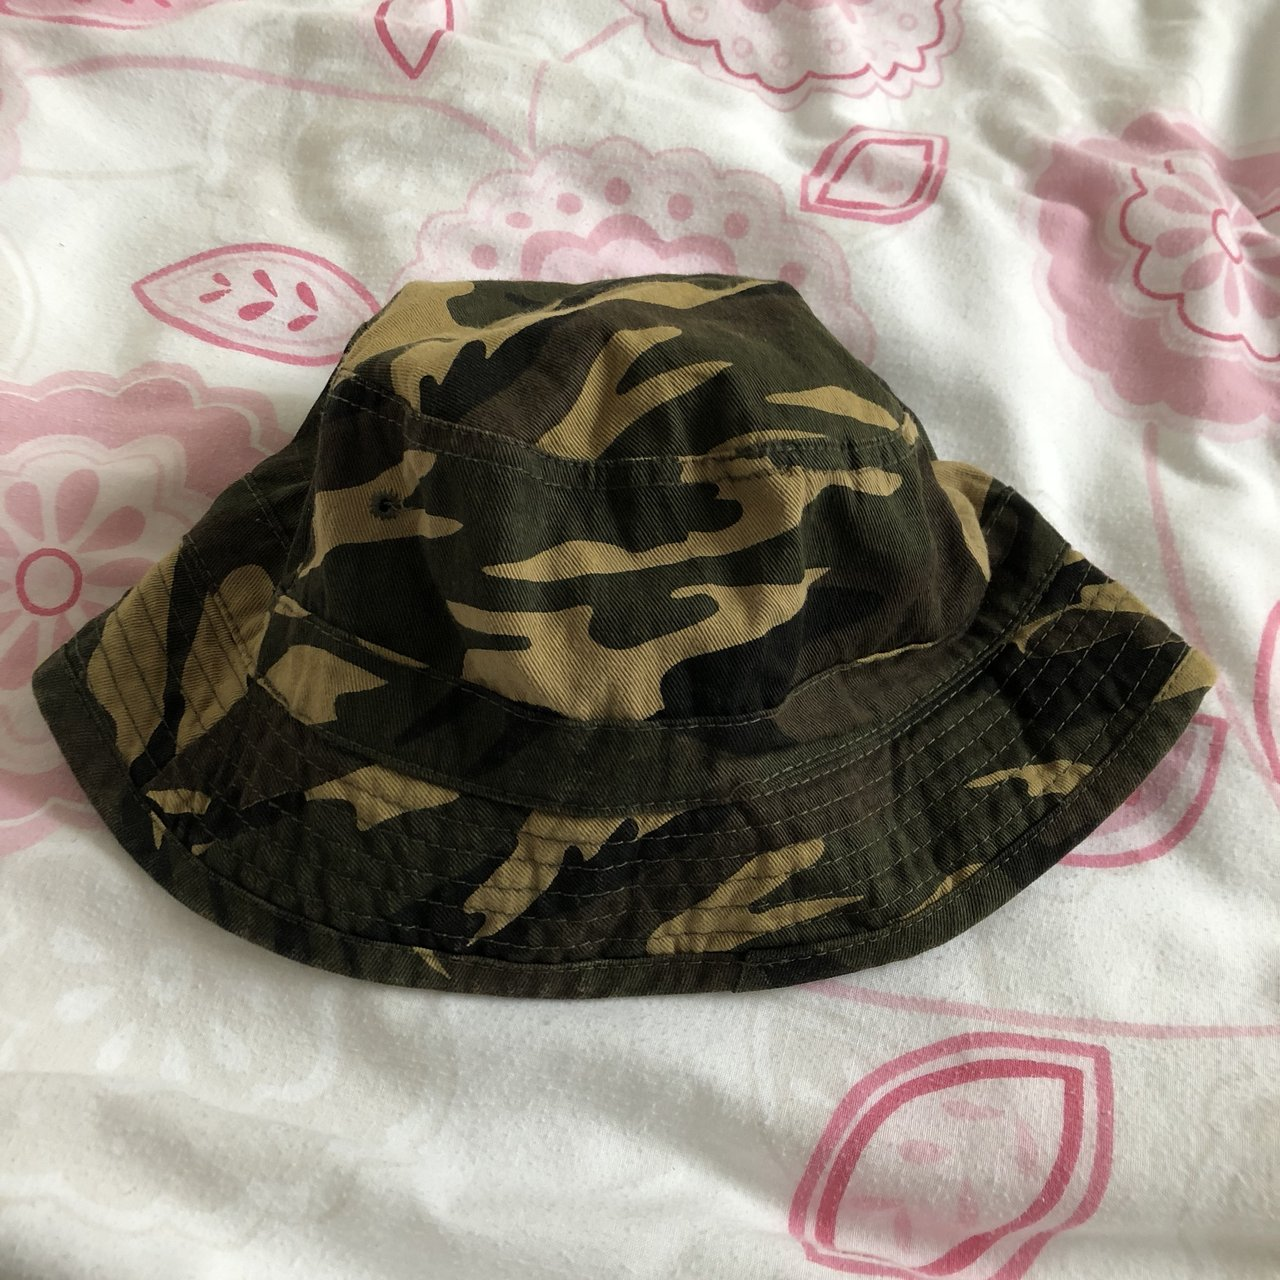 Camp bucket hat Small size best for average size head lol - Depop 091bc47825c